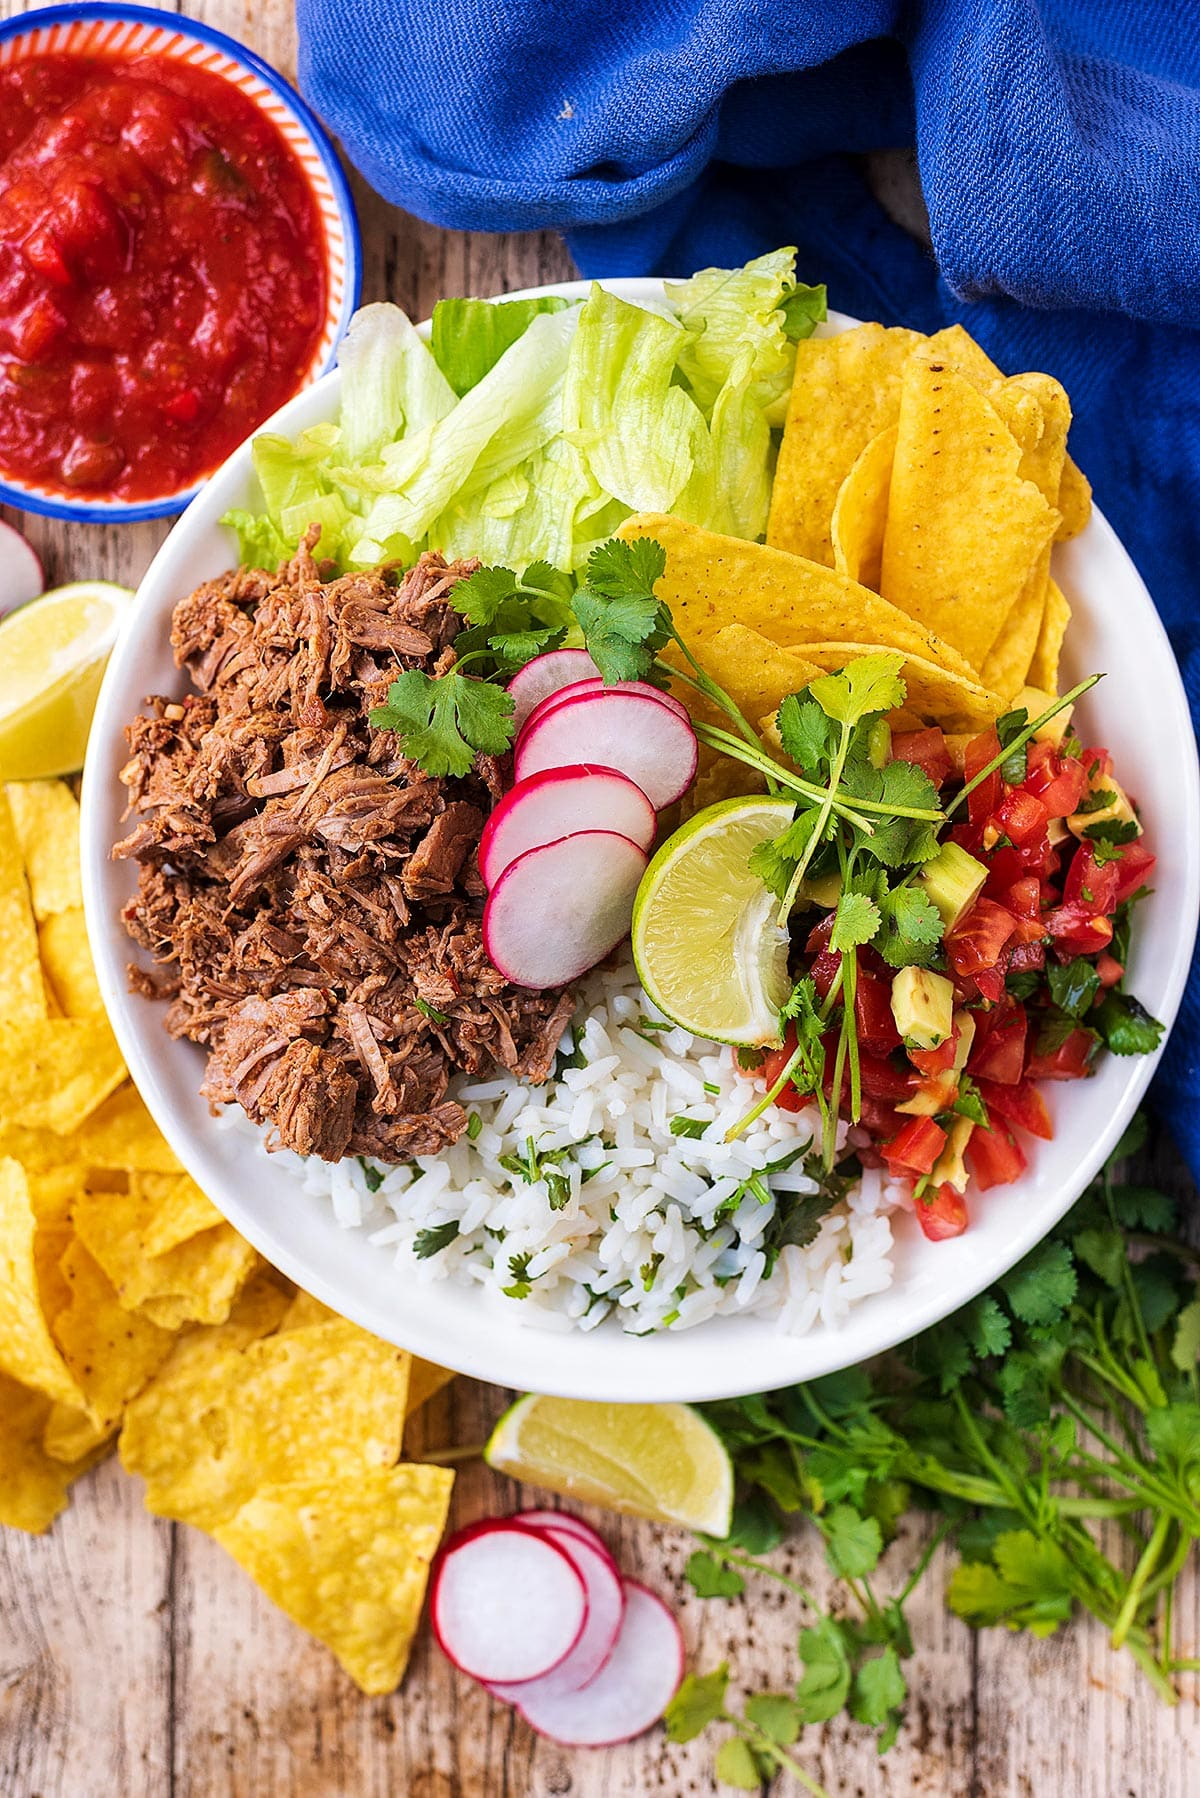 A burrito bowl consisting of shredded beef, lettuce, salsa, rice, tortilla chips and sliced radish